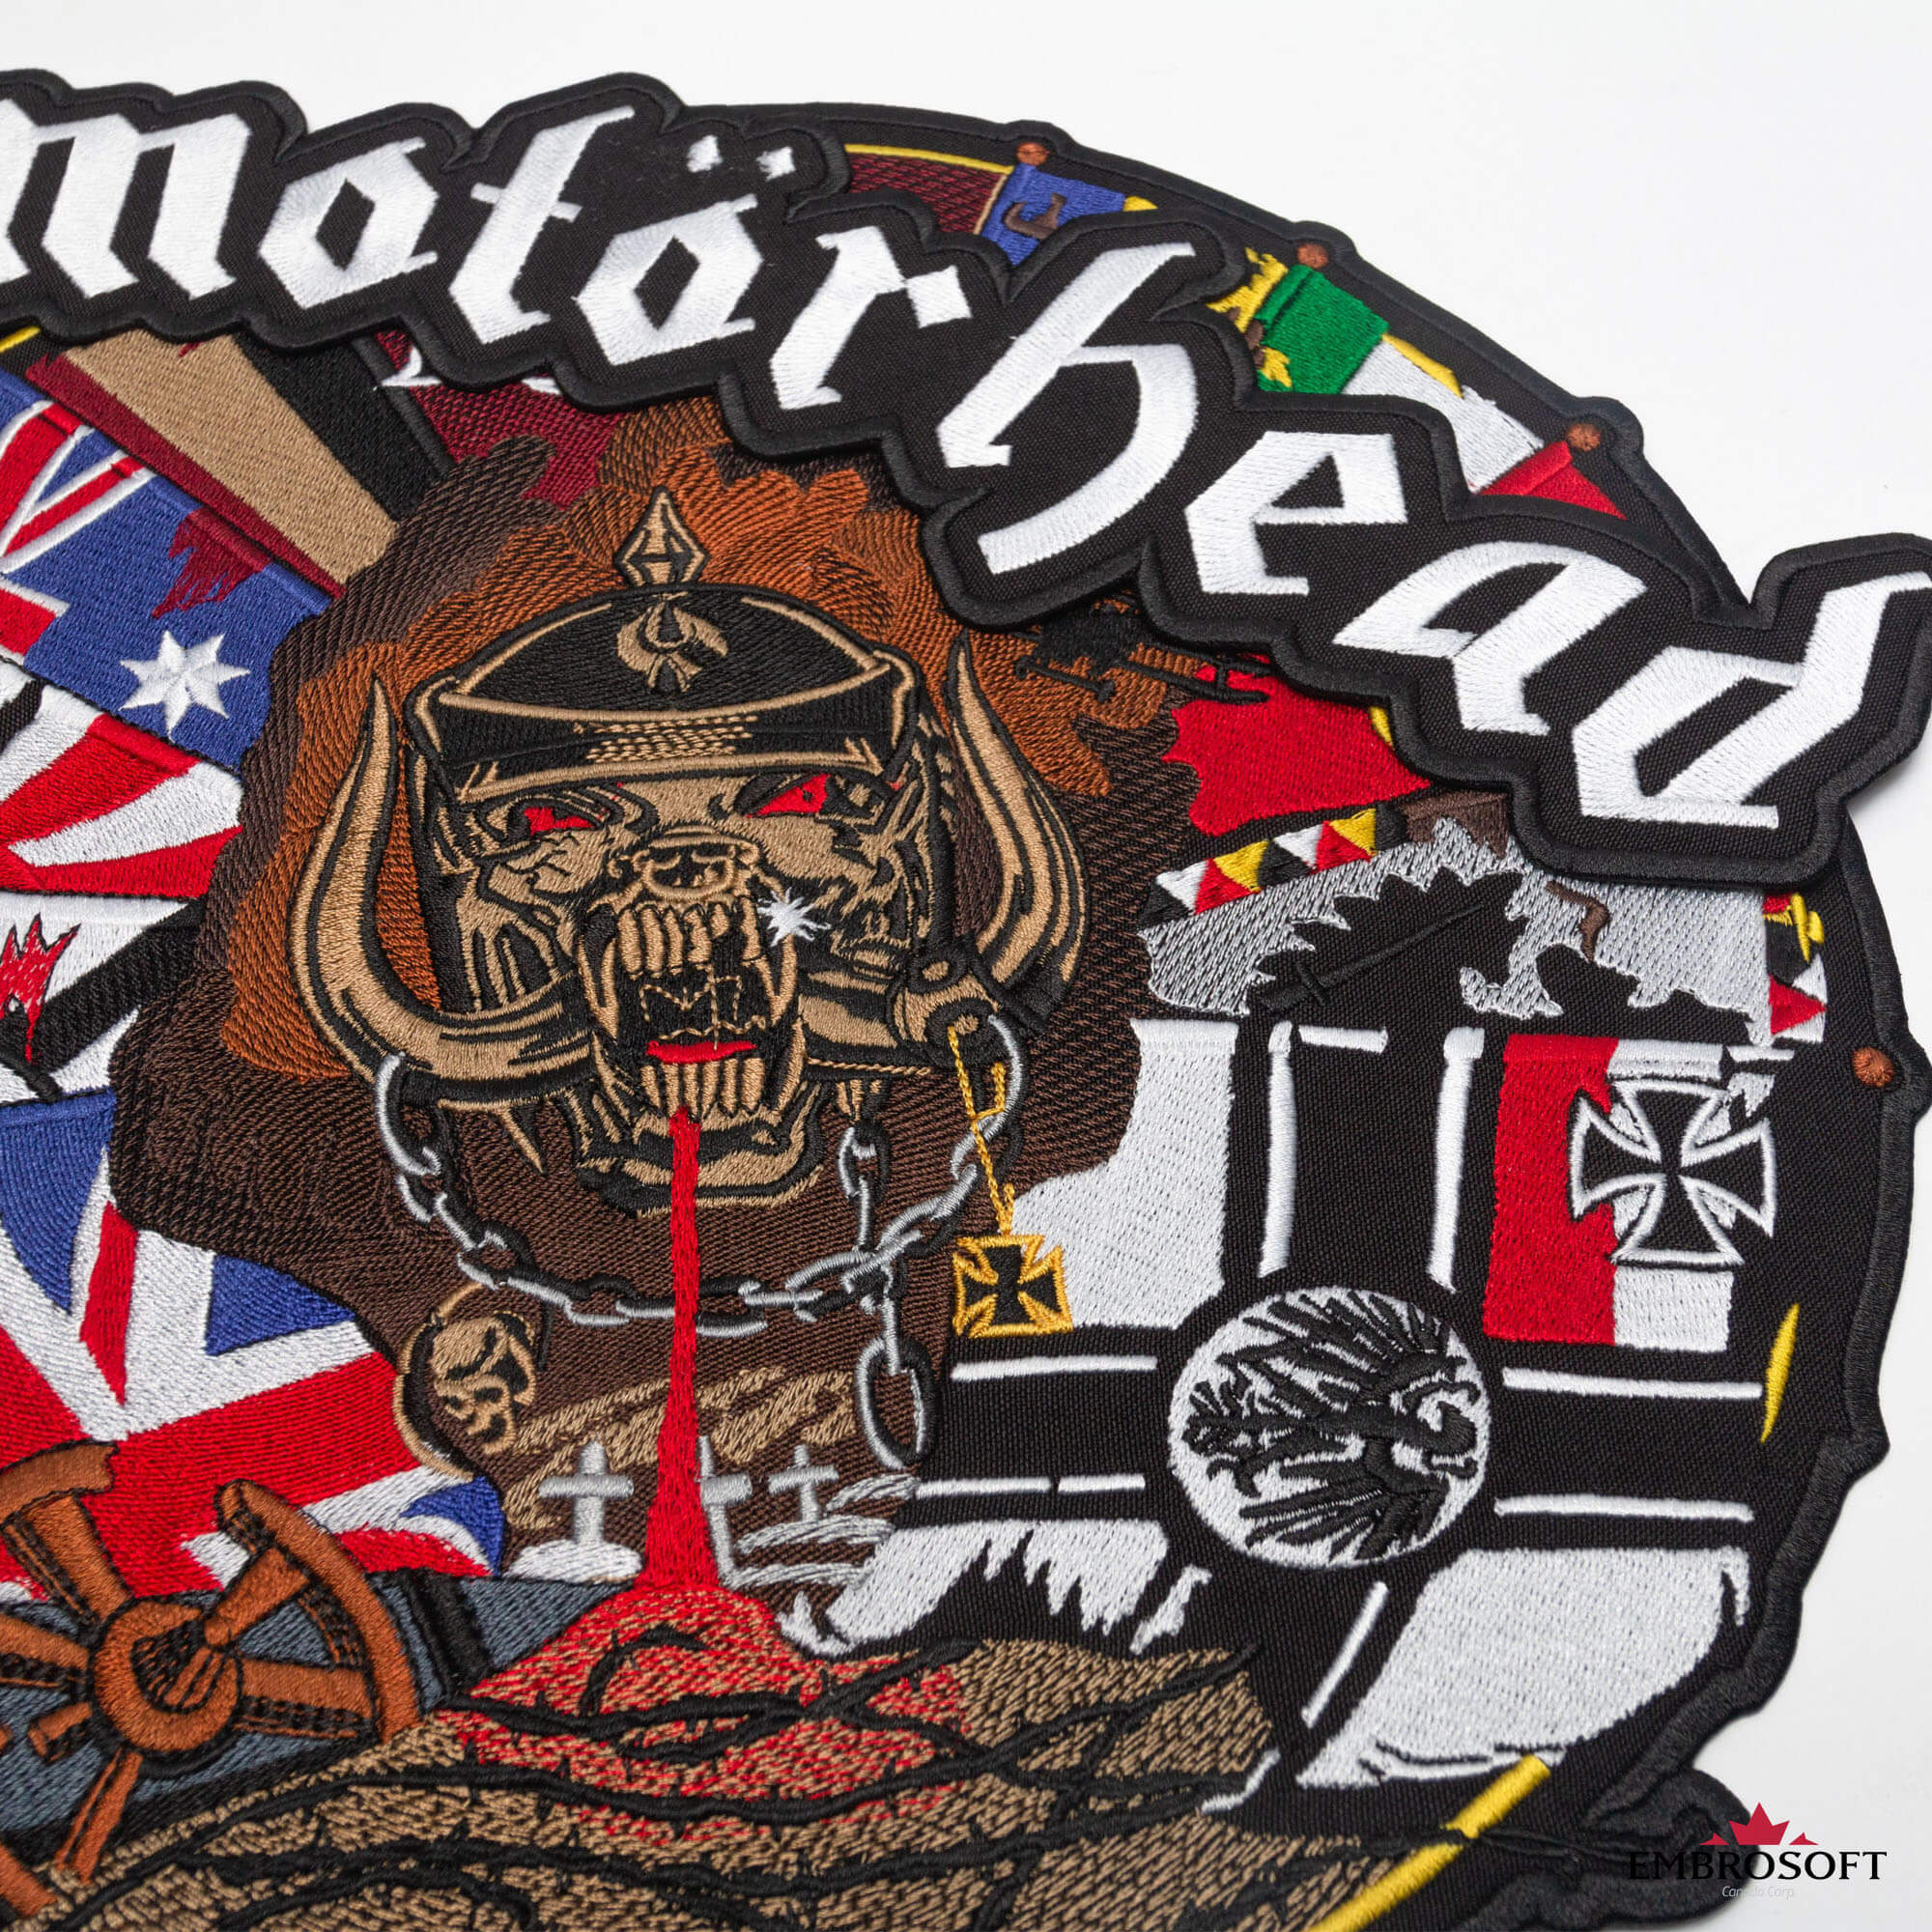 Big Back set patch Motorhead band.